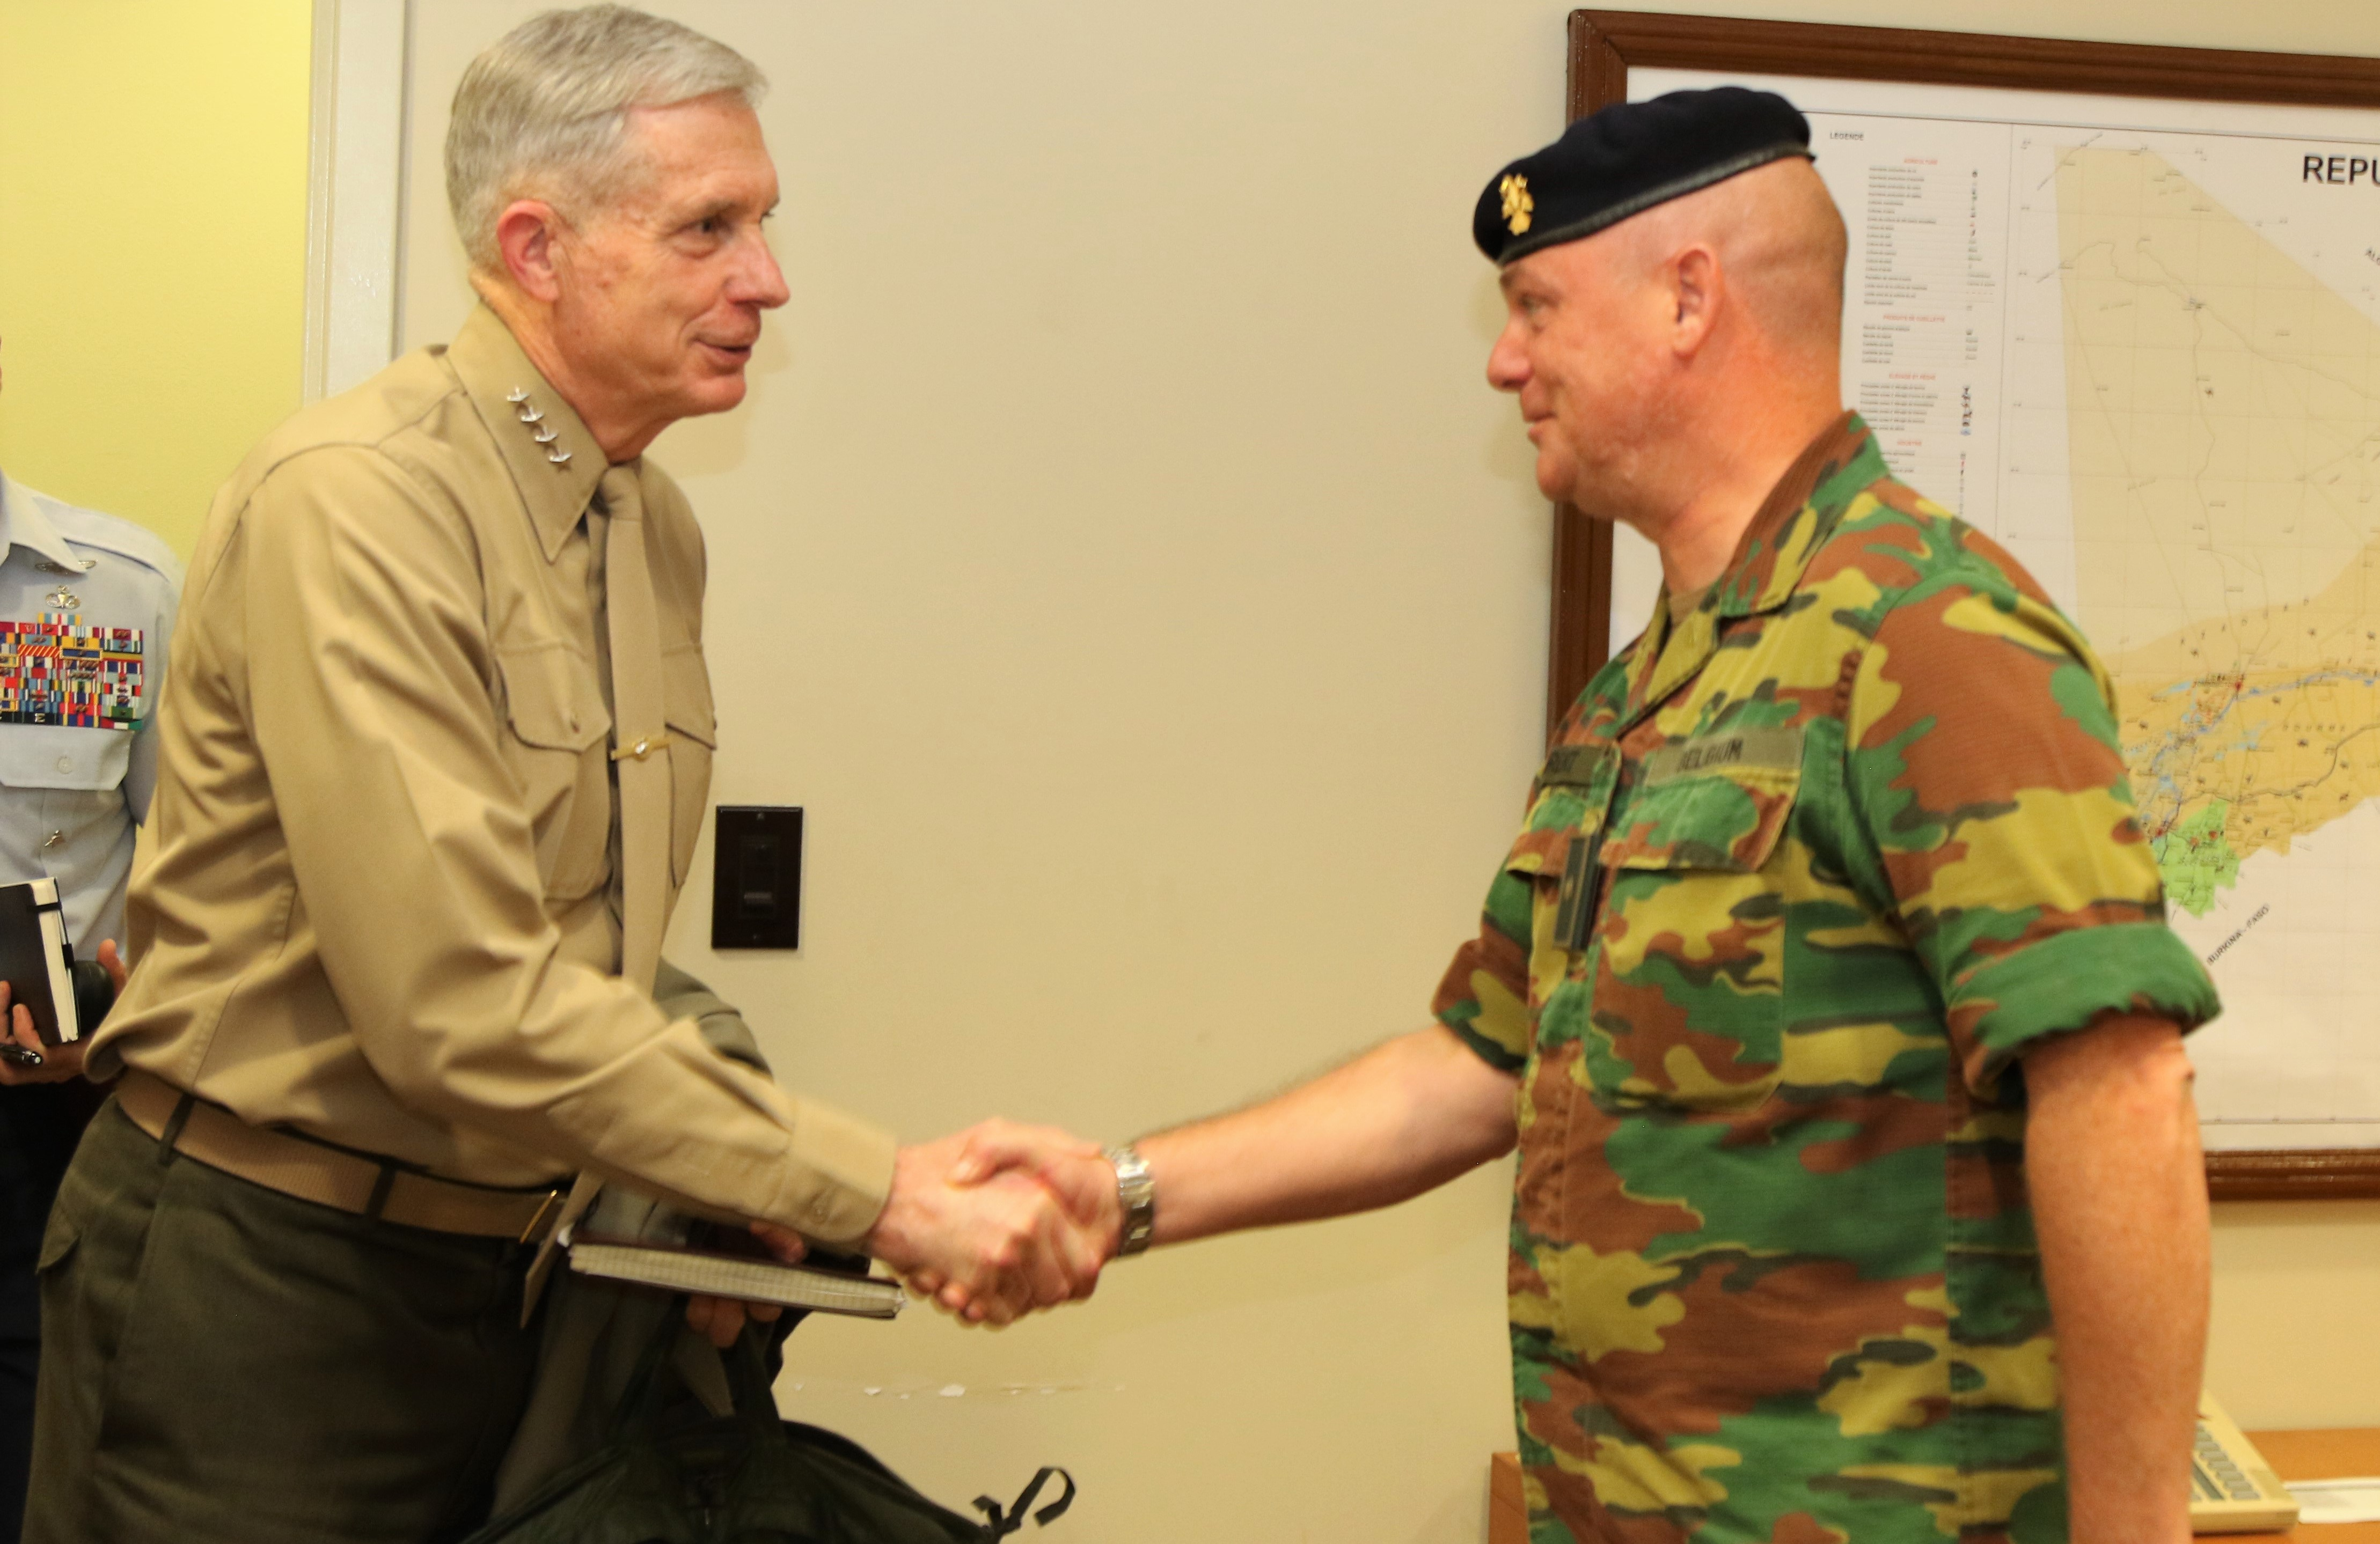 U.S. Marine Corps Gen. Thomas D. Waldhauser, commander, U.S. Africa Command, left, meets with Belgian Brig. Gen. Bart Laurent, commander, European Union Training Mission in Mali Jan 23, 2018 in Bamako, Mali. (U.S. AFRICOM photo by Nate Herring/Released)